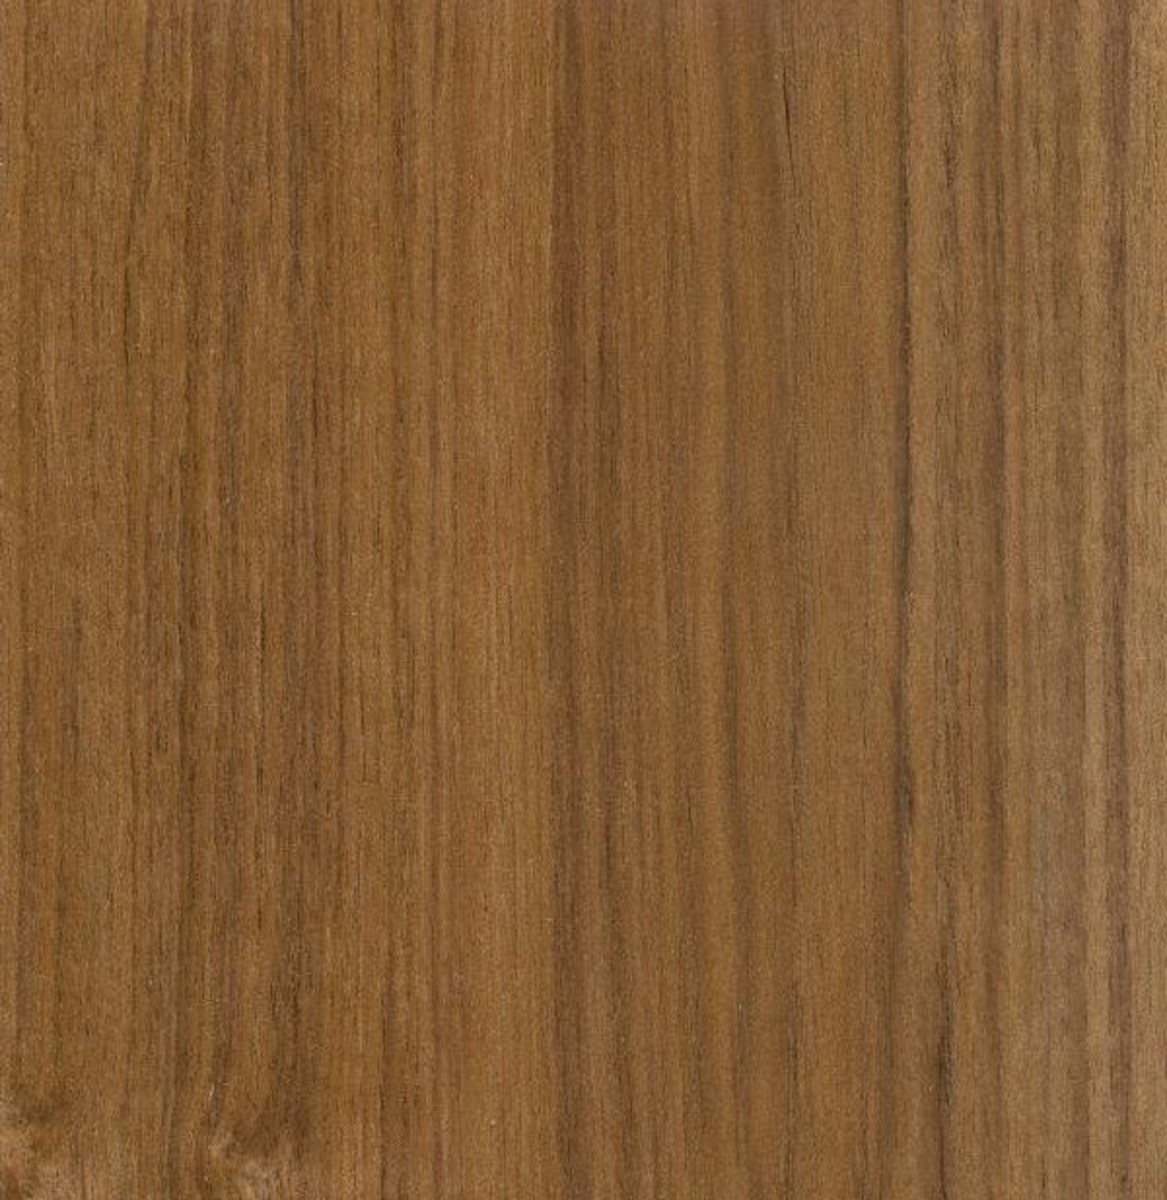 Straight grain of teak wood